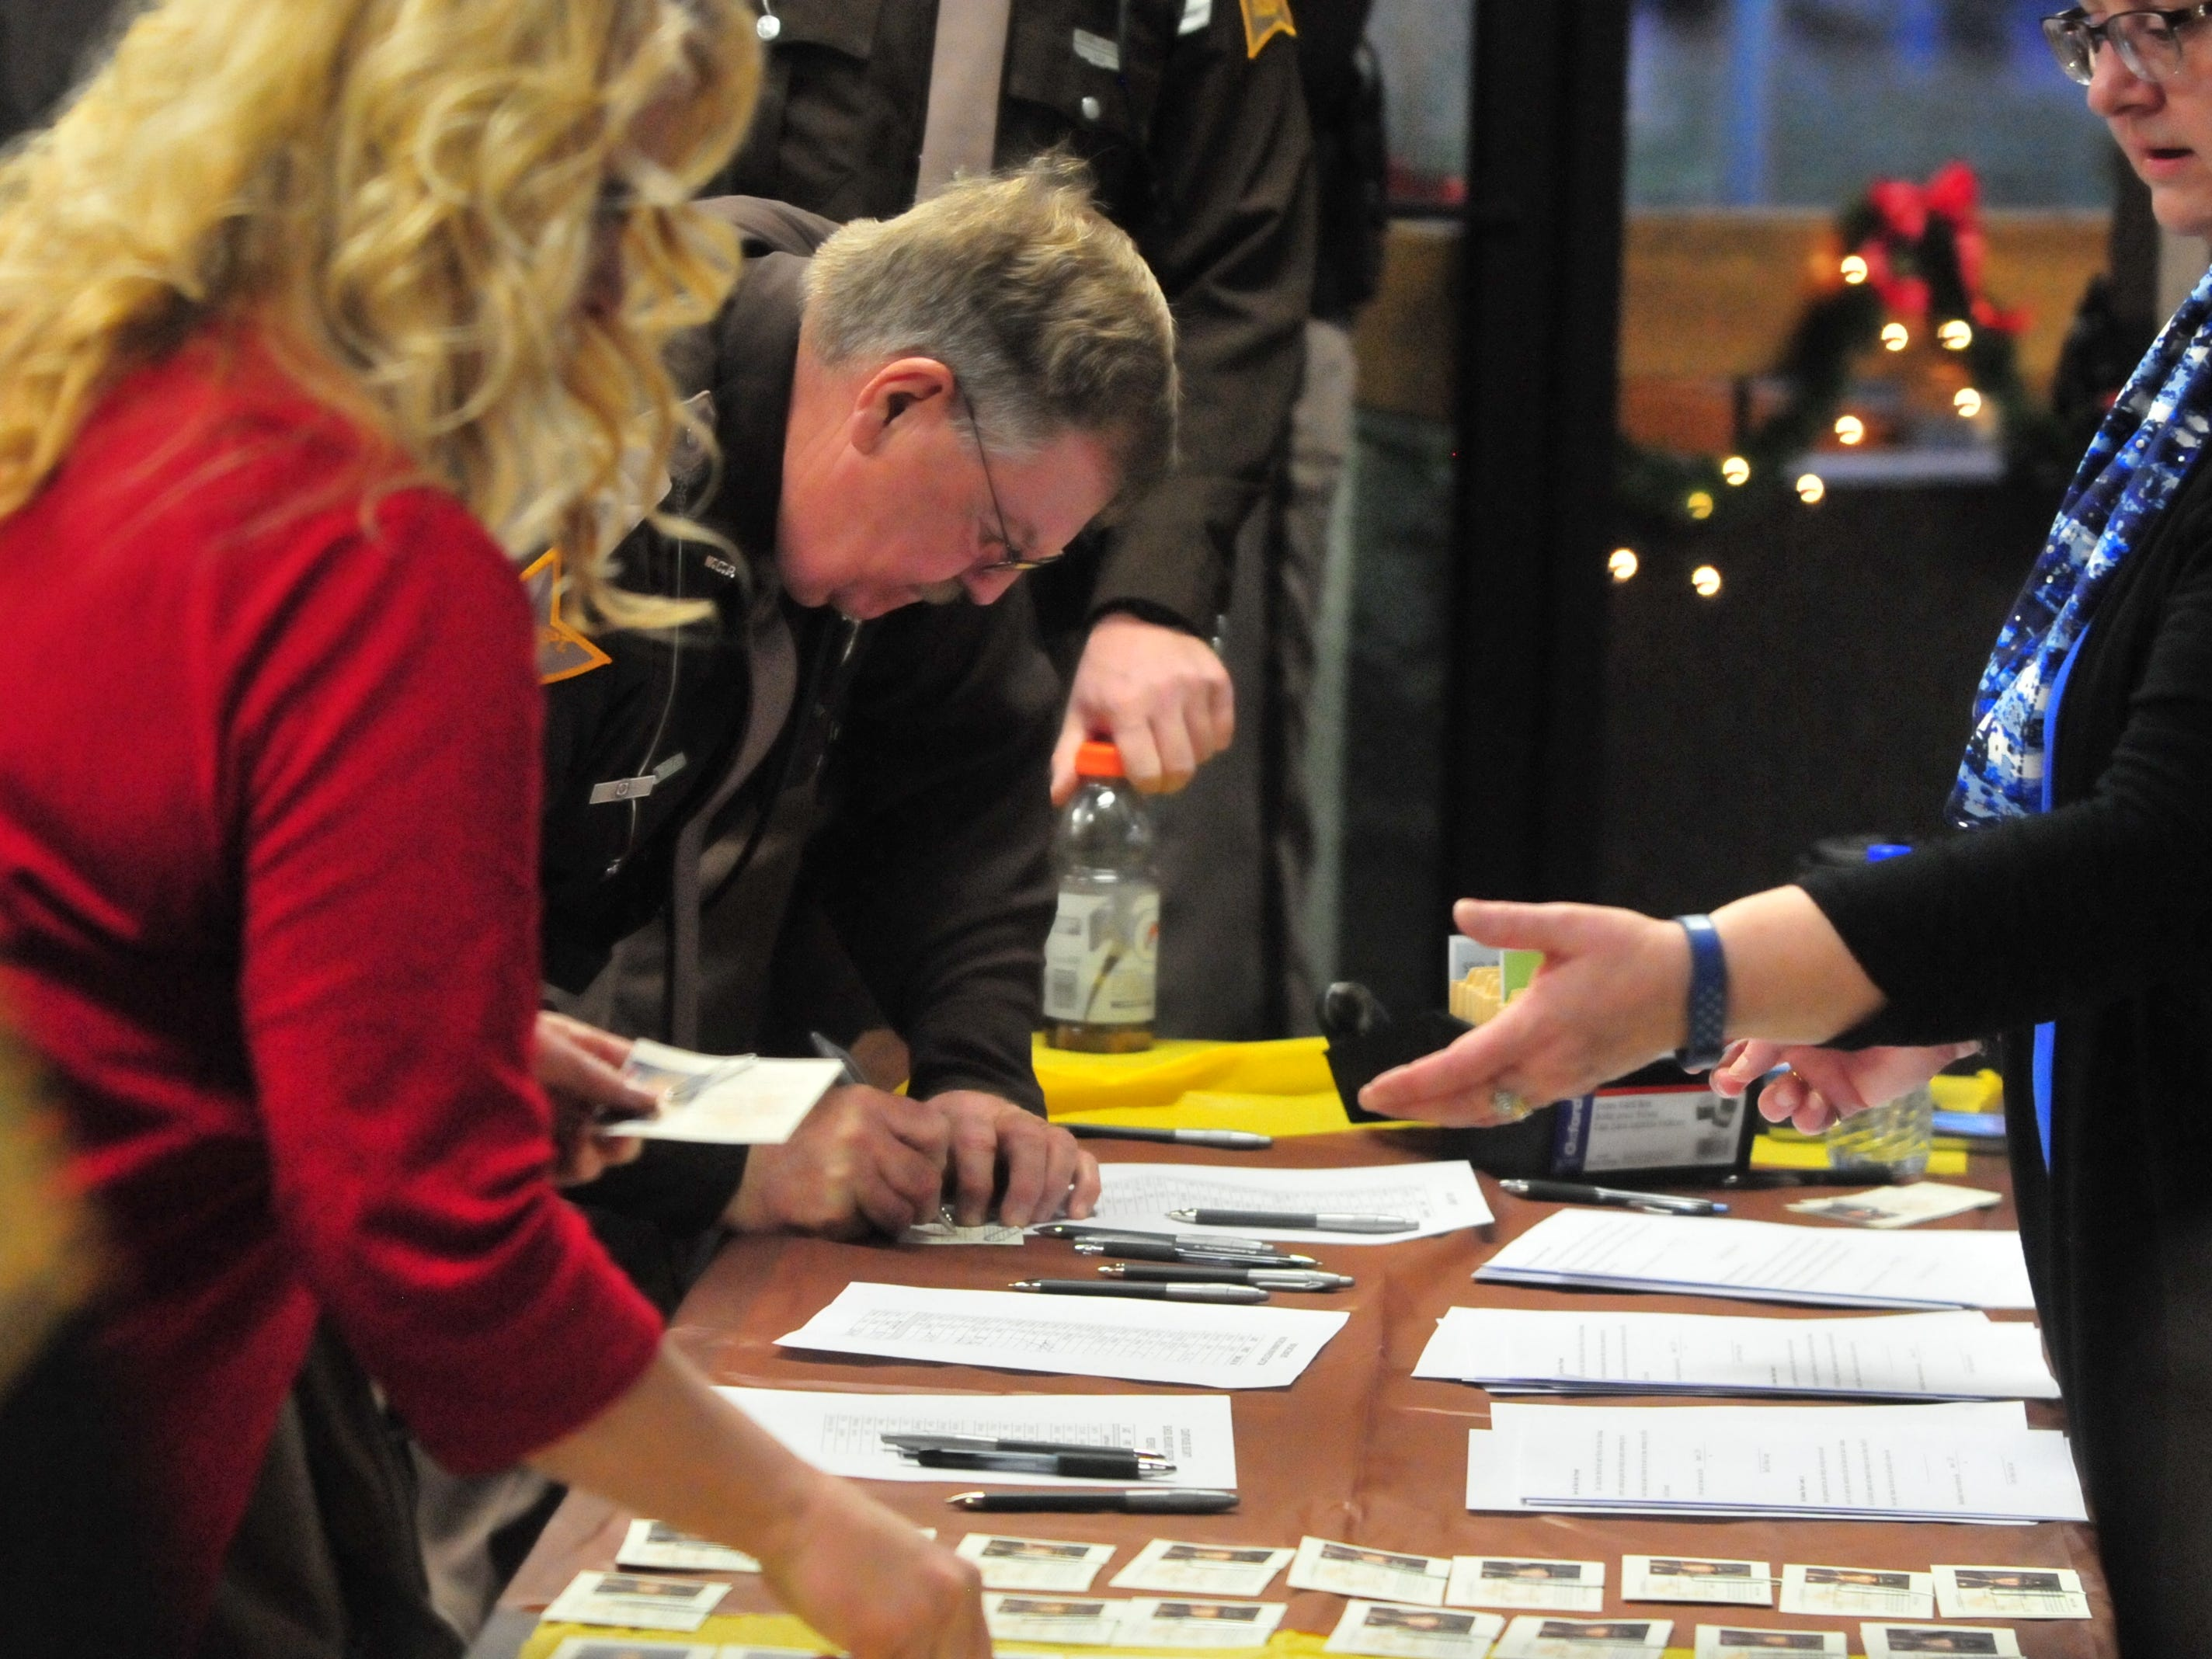 Wayne County Sheriff's Office personnel sign in and locate their new identification cards Friday at a group swearing in ceremony.